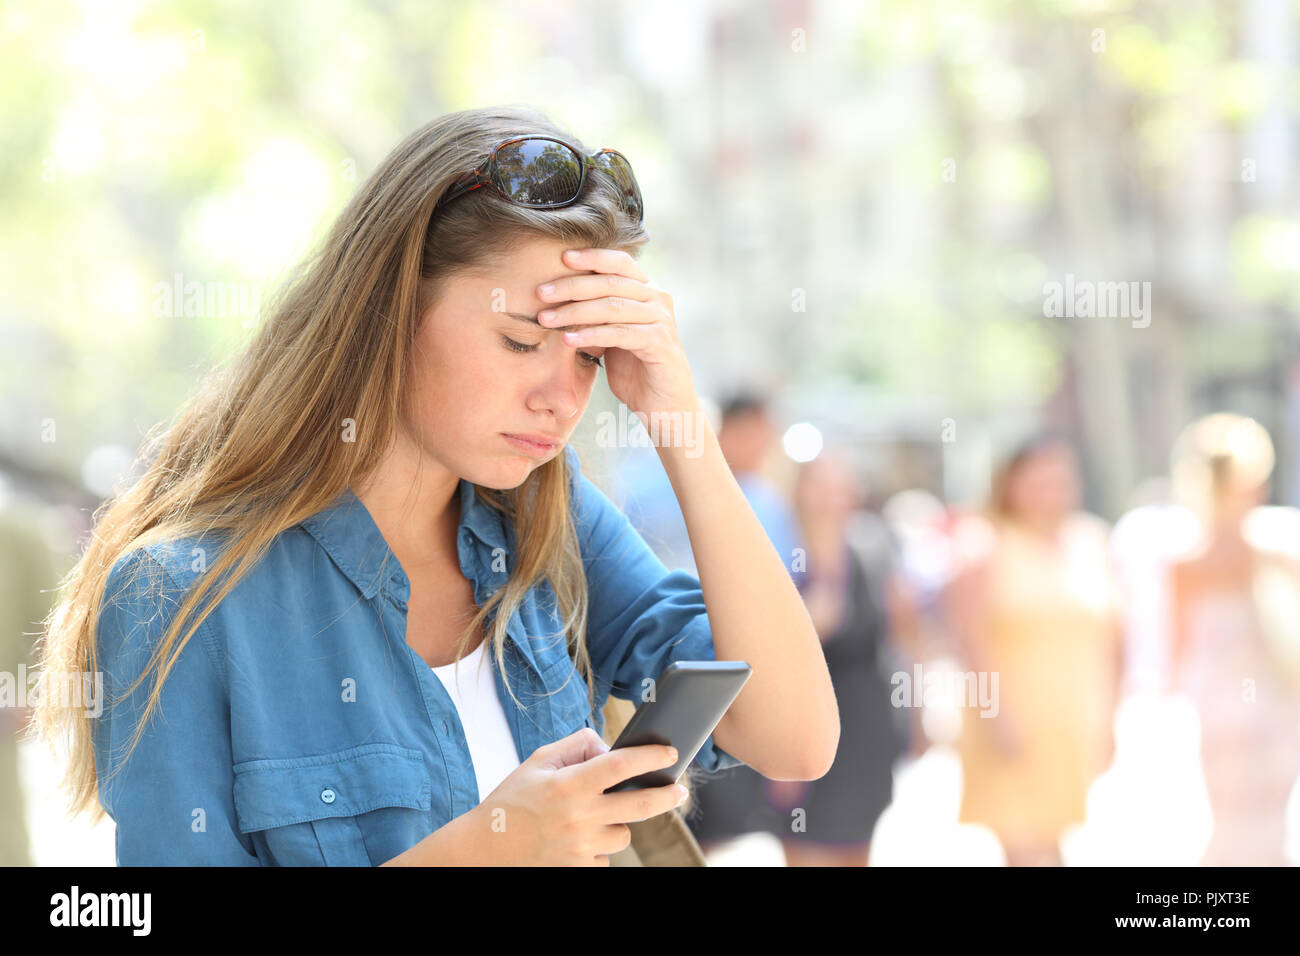 147c4d36f41 Worried woman reading online smart phone content in the street - Stock Image